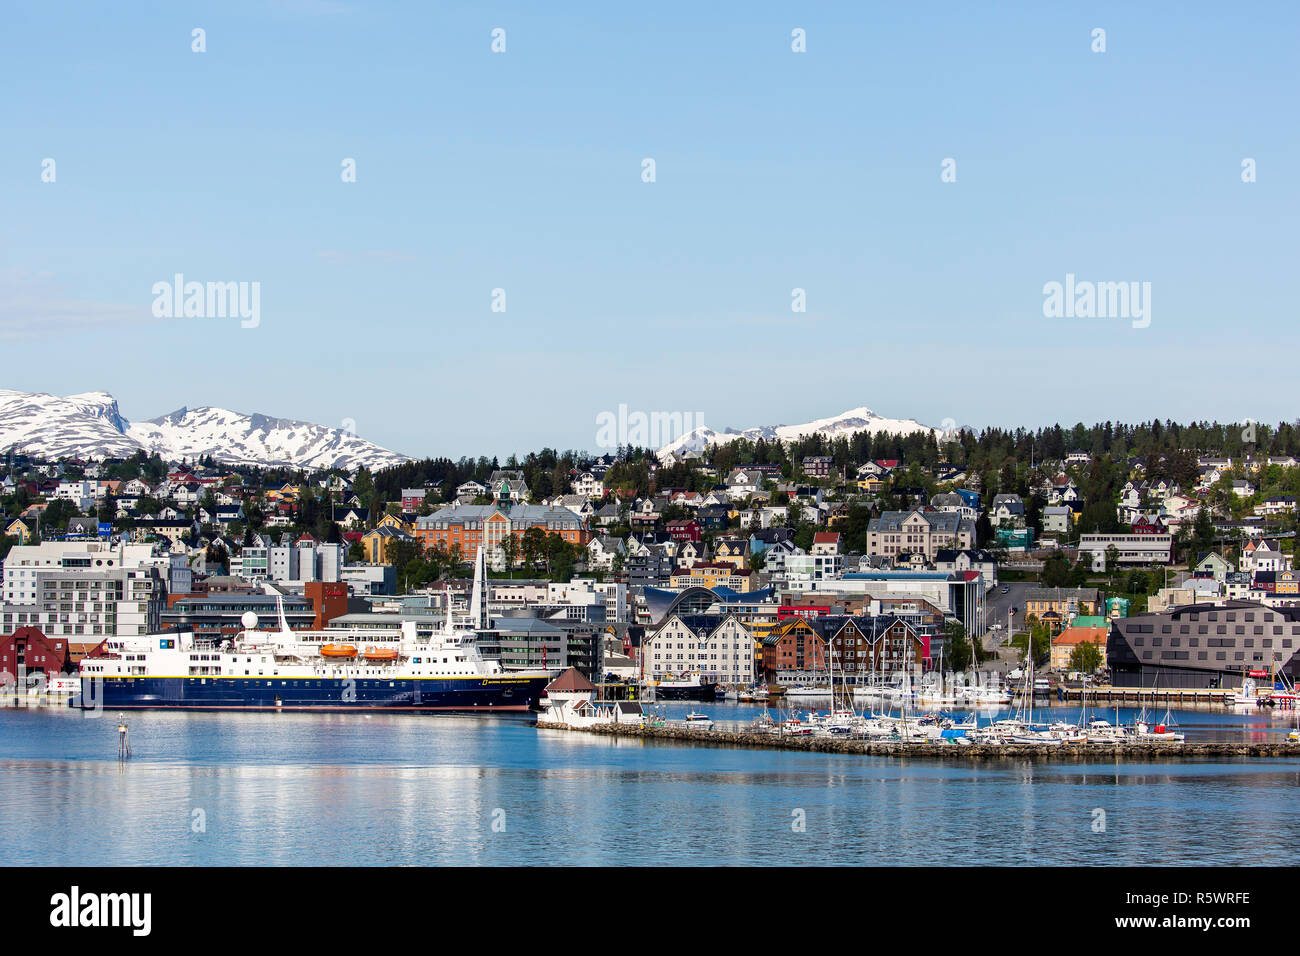 The Lindblad Expeditions ship National Geographic Explorer at the dock in Tromsø, Norway - Stock Image